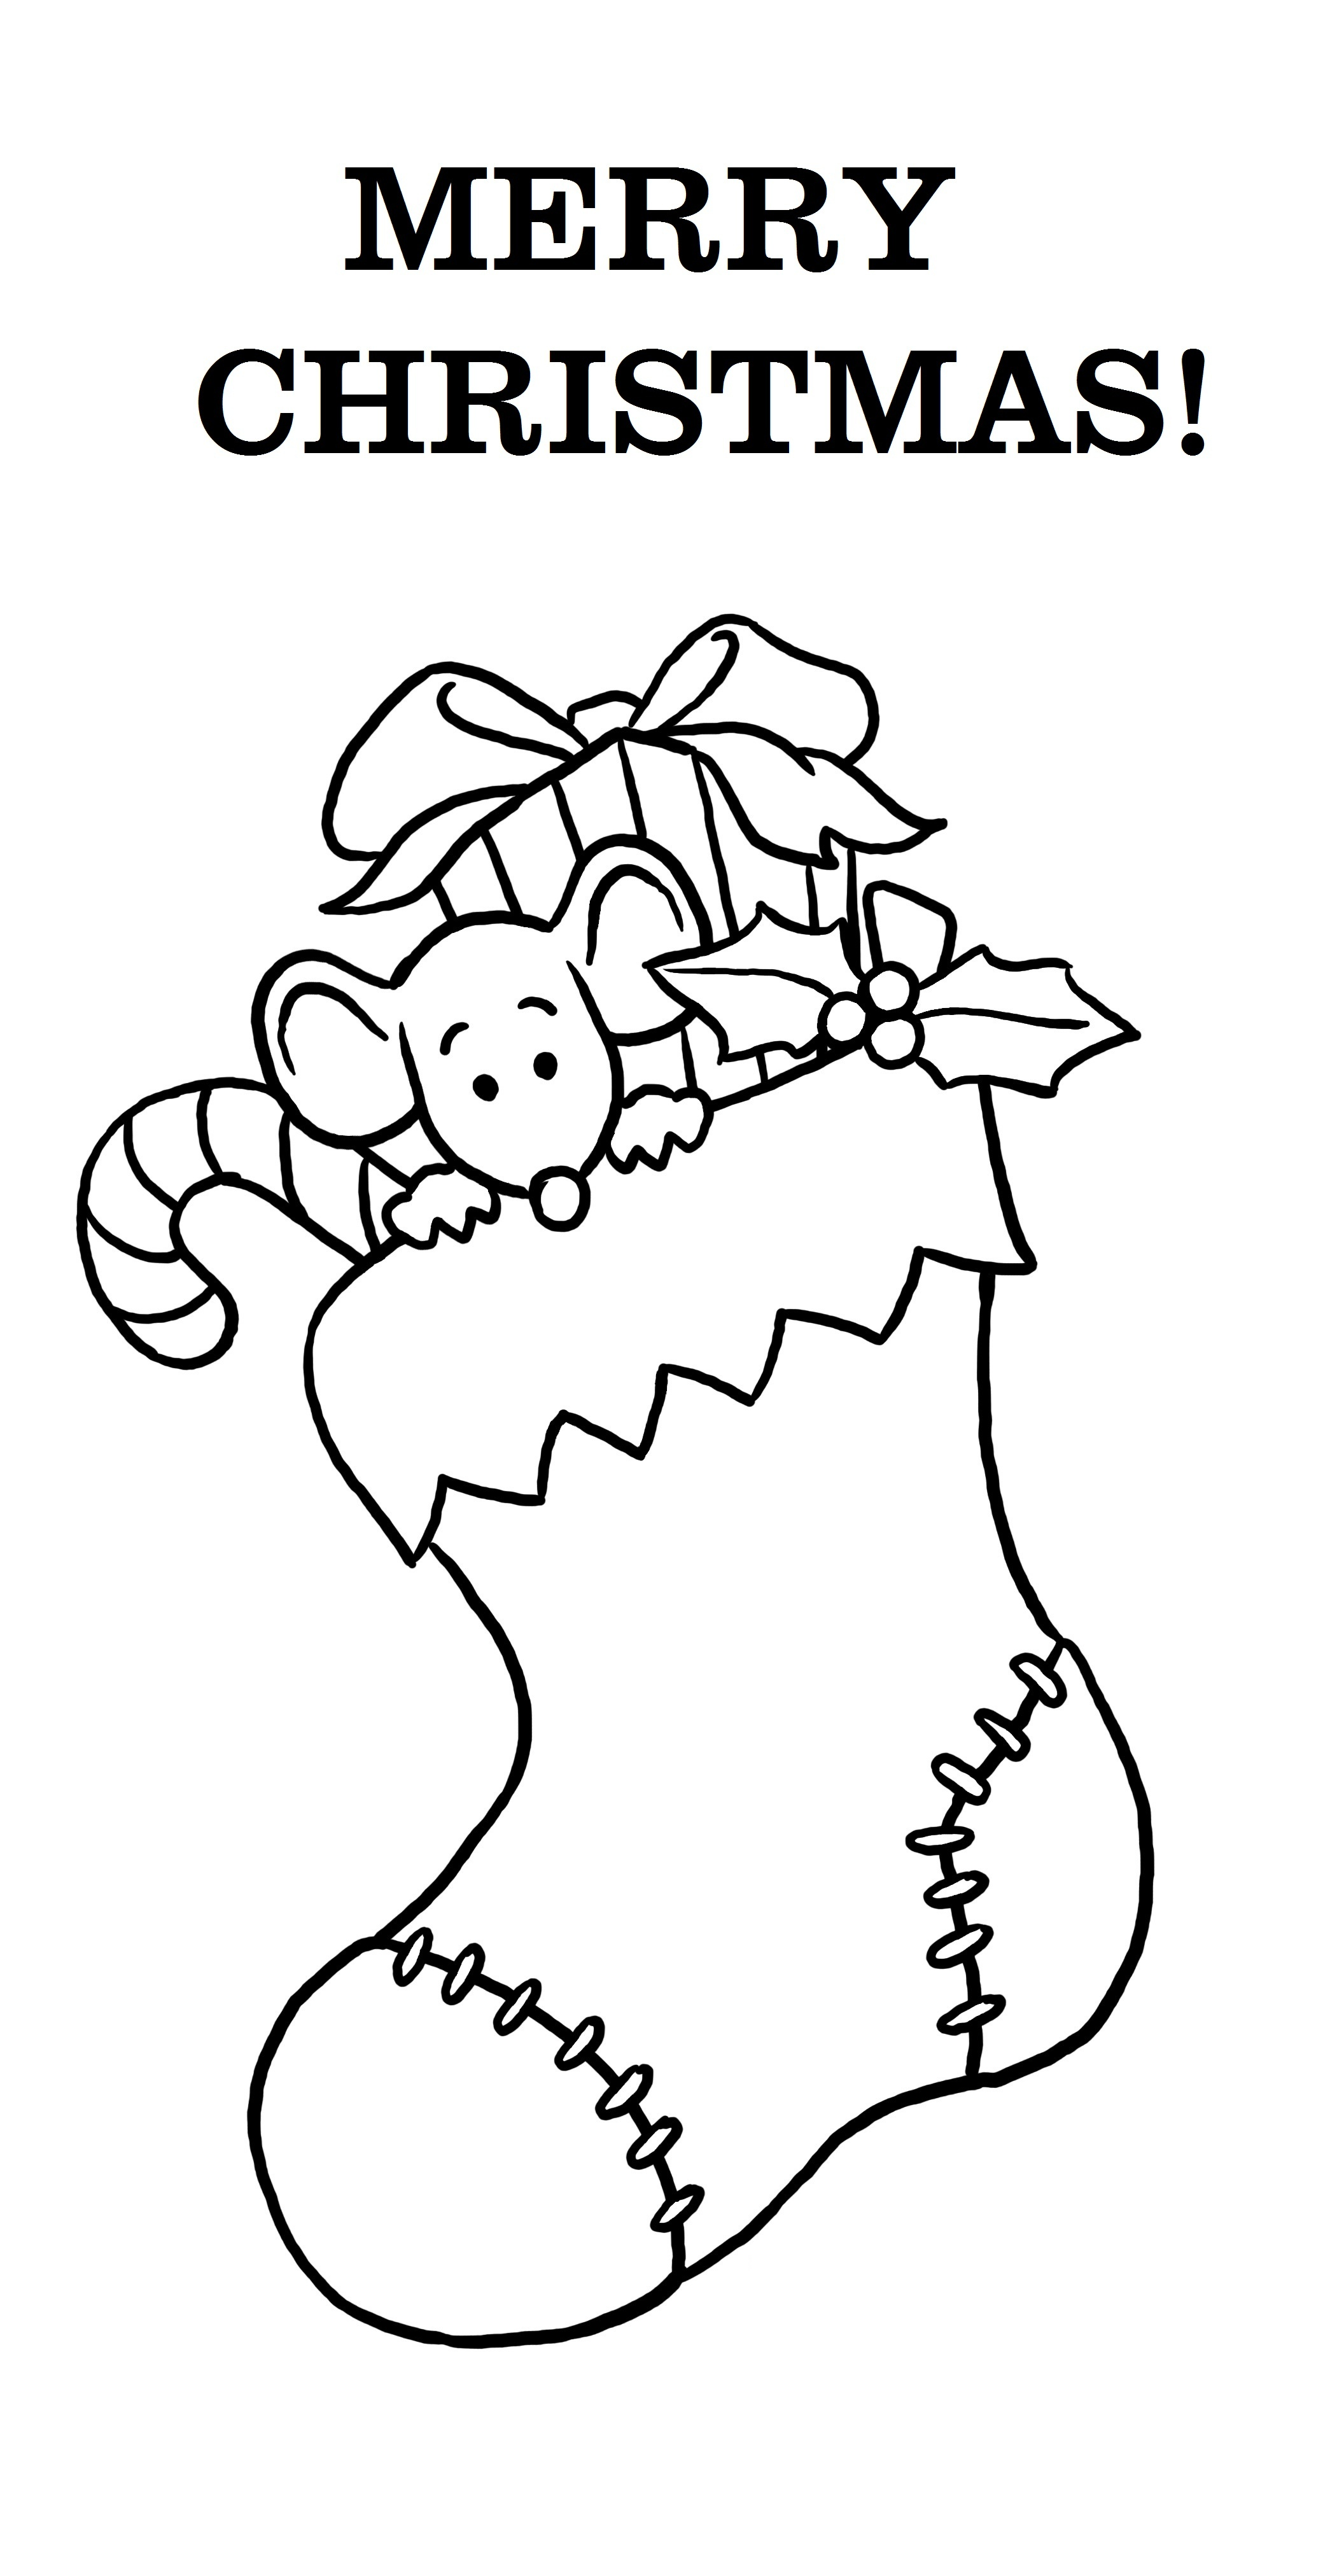 Free Printable Merry Christmas Coloring Pages - Free Printable Christmas Coloring Pages For Kids